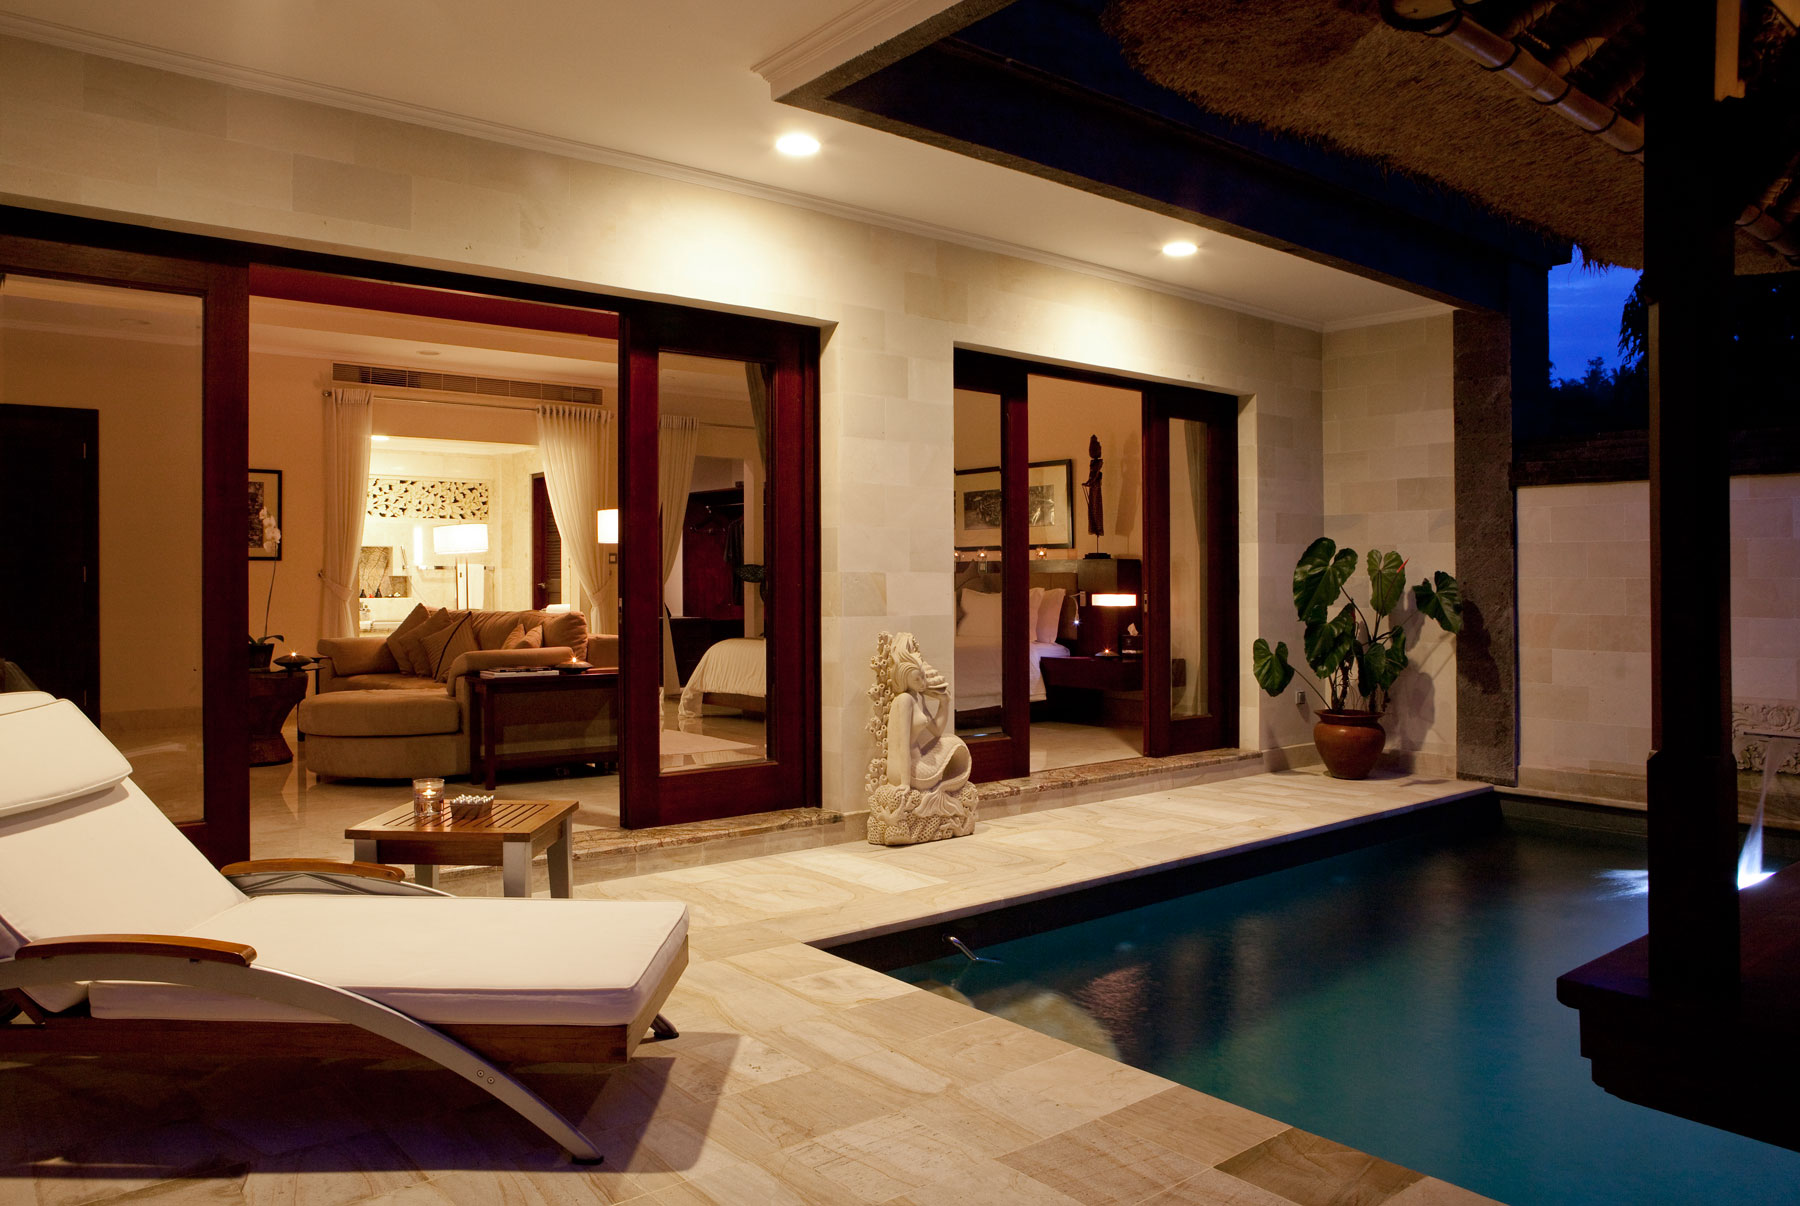 5 Star Viceroy Bali Resort in the Valley of the Kings